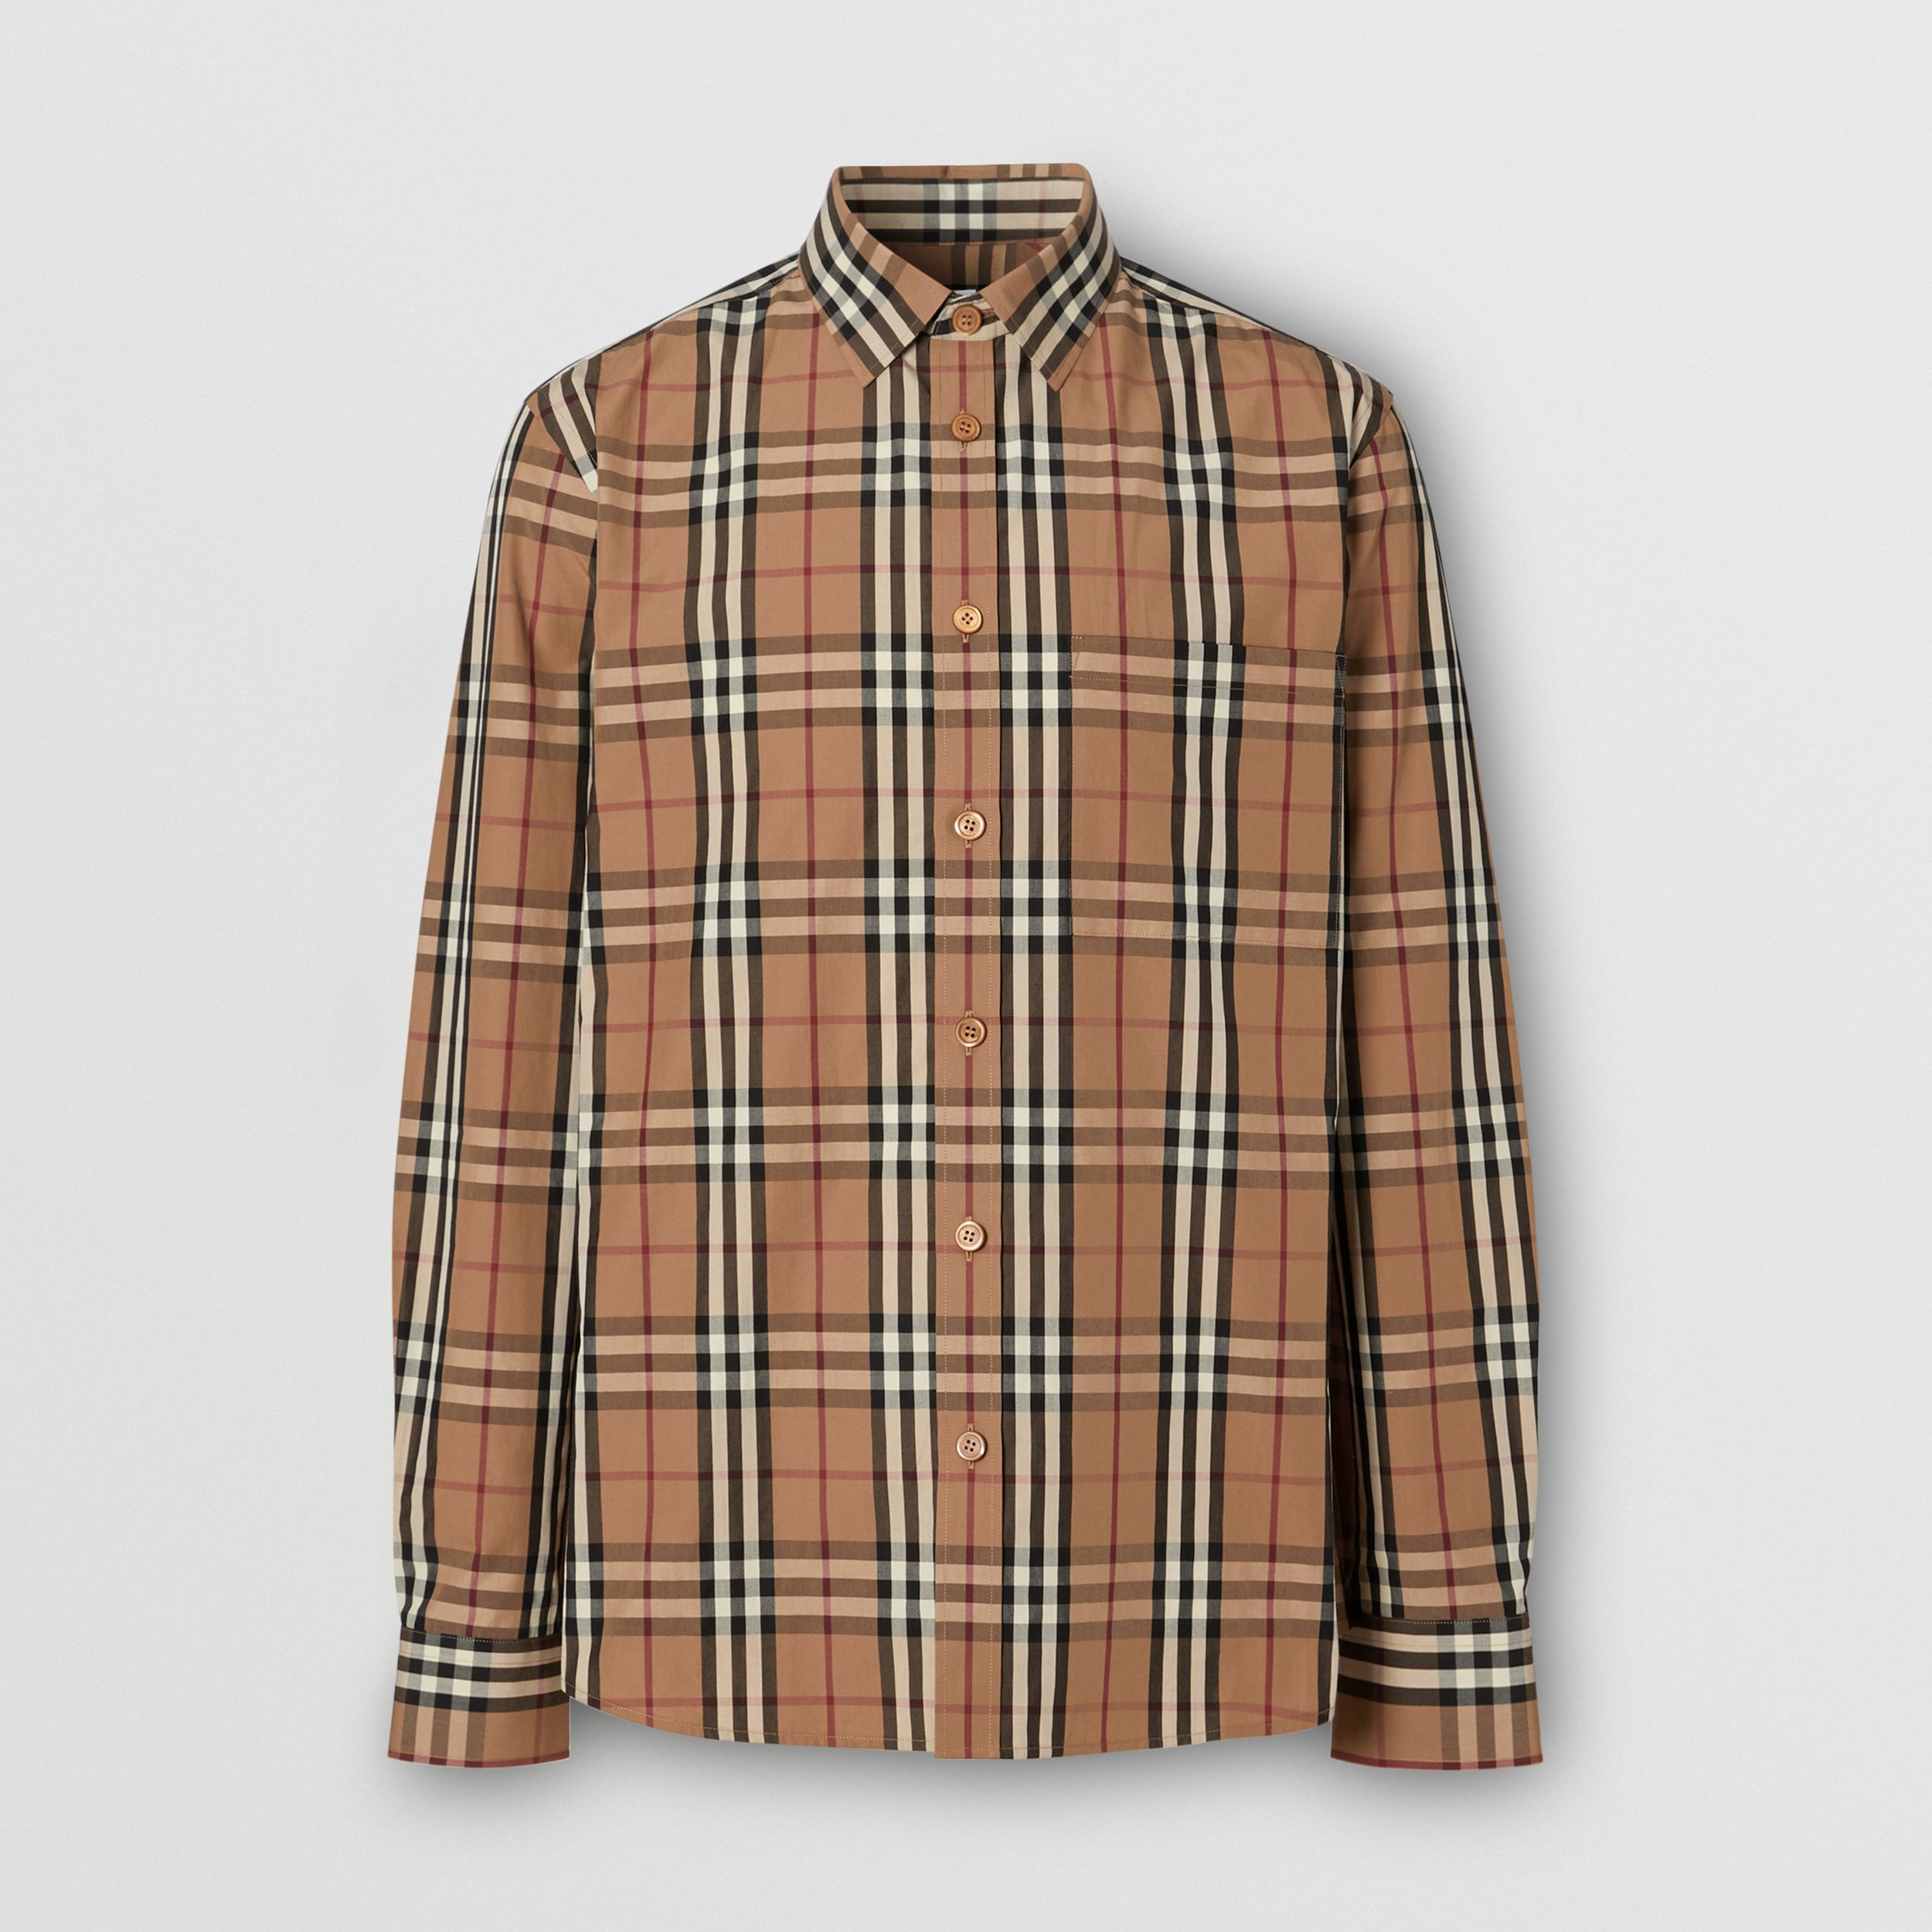 Vintage Check Cotton Poplin Shirt in Birch Brown | Burberry Australia - 4